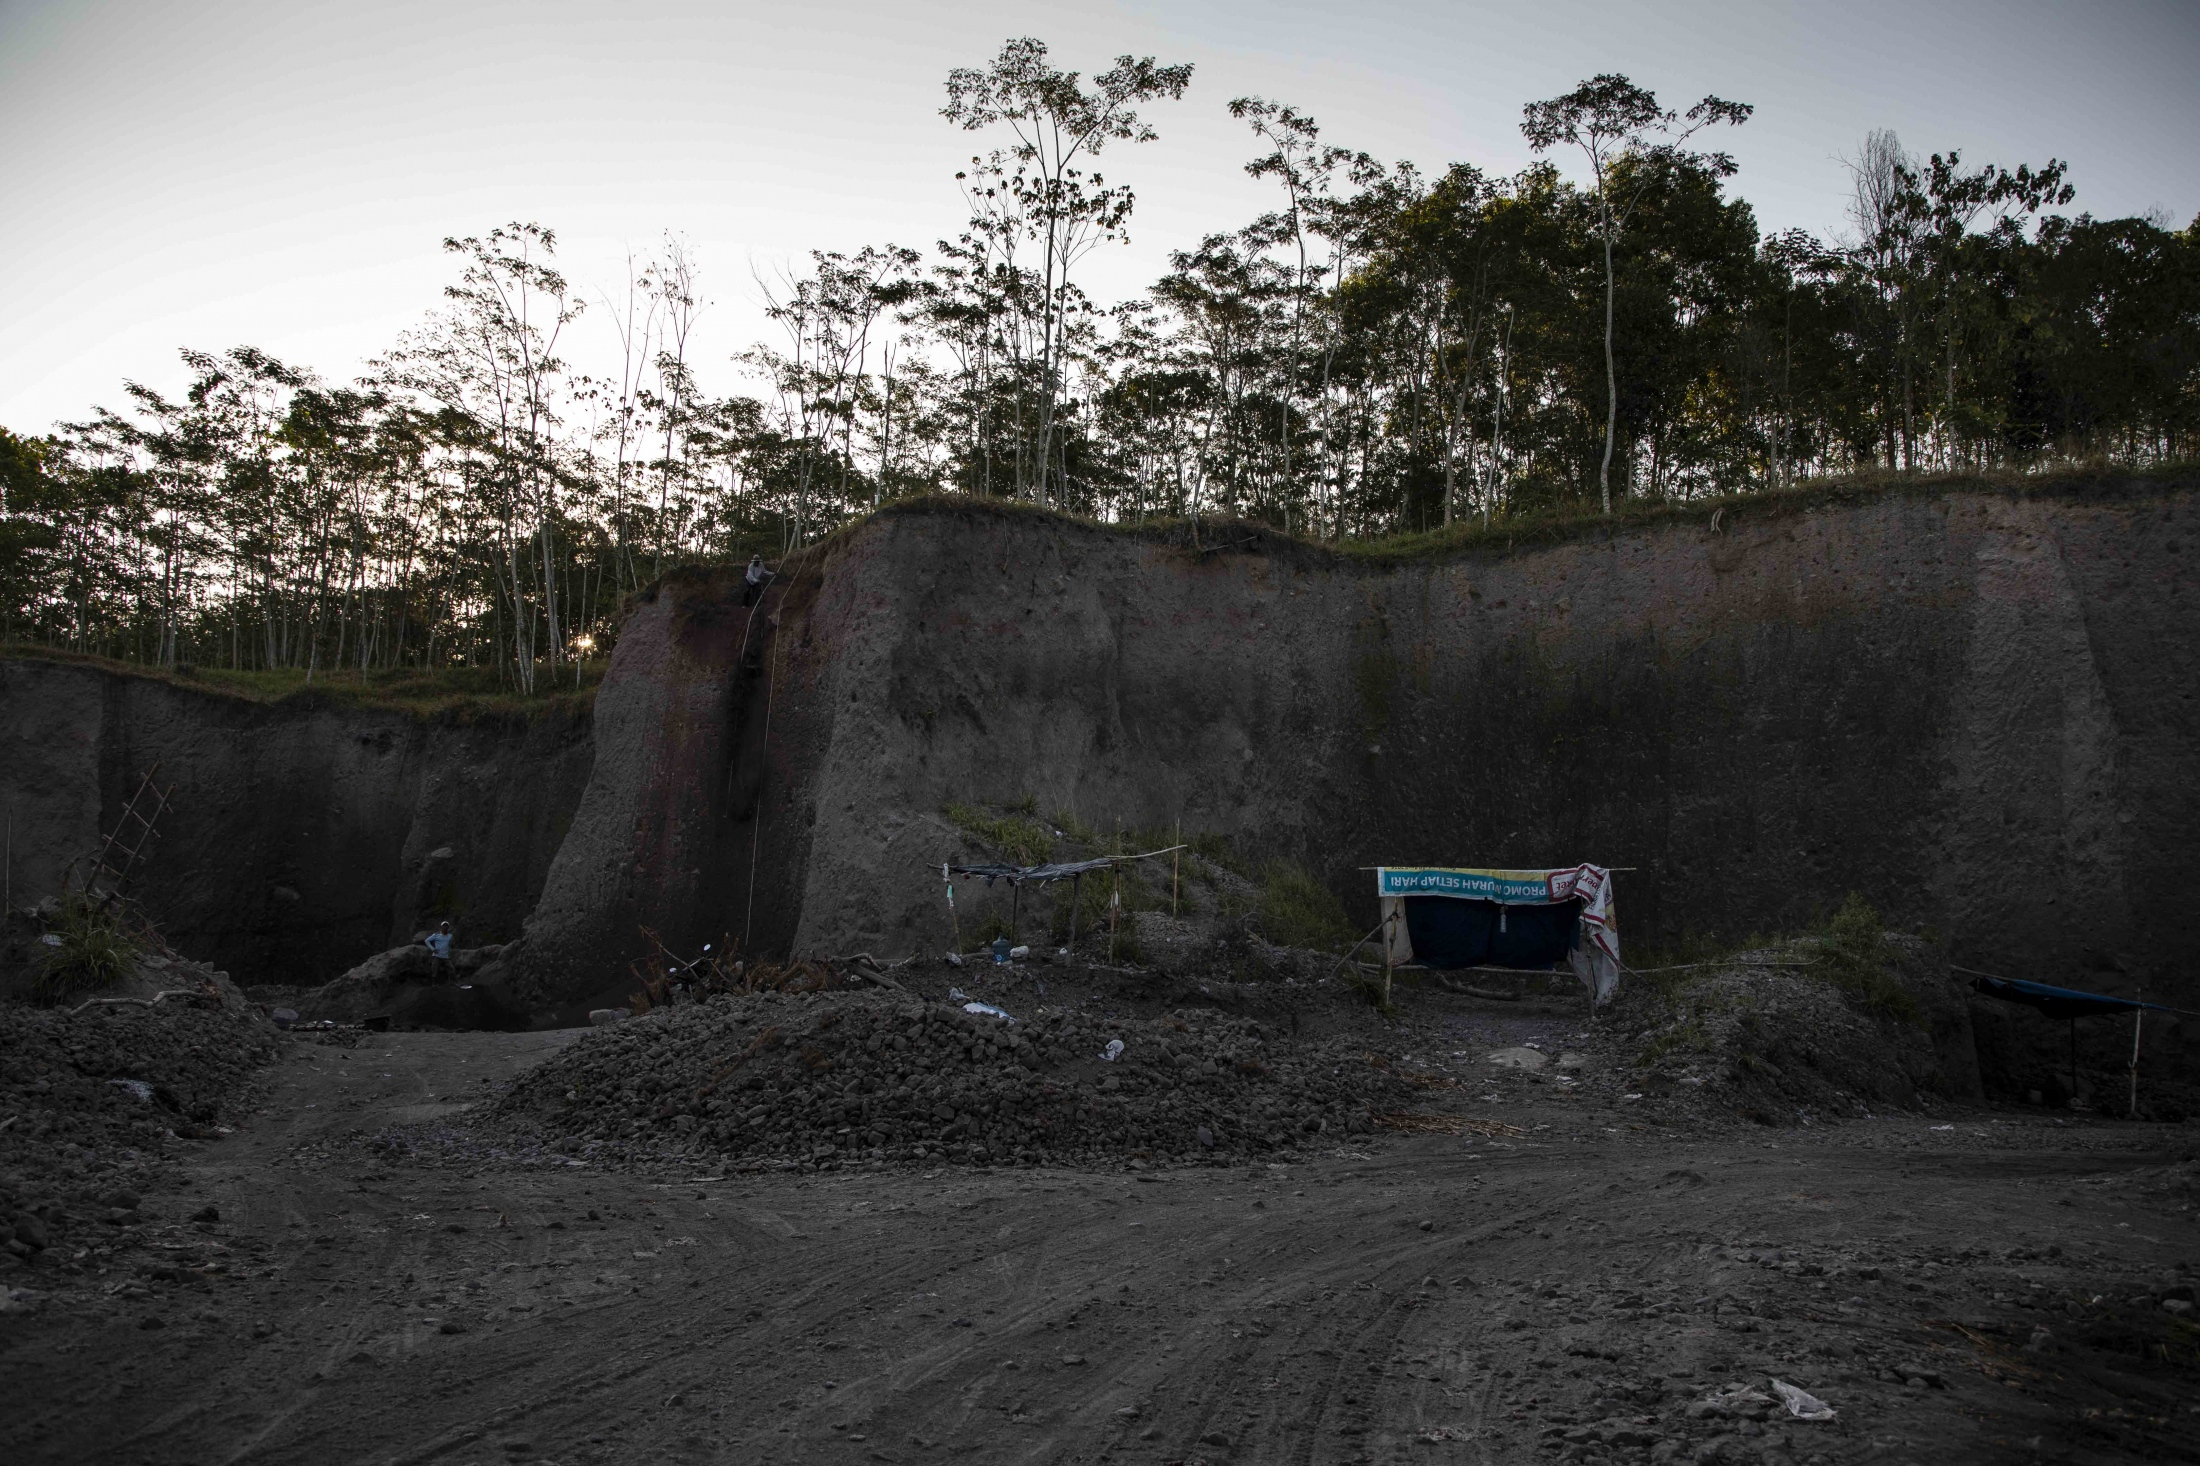 A sand-mining ground on Mount Merapi. In recent years, illegal sand mining has become a controversial reality of mountain life. In the past, locals would often manually - and legally - mine the location which naturally limits the amount of sand they are able to obtain. This is even necessary due to the amount of sand the volcano produces when erupting. However, large-large-scale mining activities by non-locals have developed after 2010 and continue to take place despite lack of authorization by the government. Scientists are certain that this severely threatens Merapi`s lava embankments. Locals for whom the mountain is sacred, believe it will anger the ancient Javanese spirits inhabiting it and cause further eruptions.